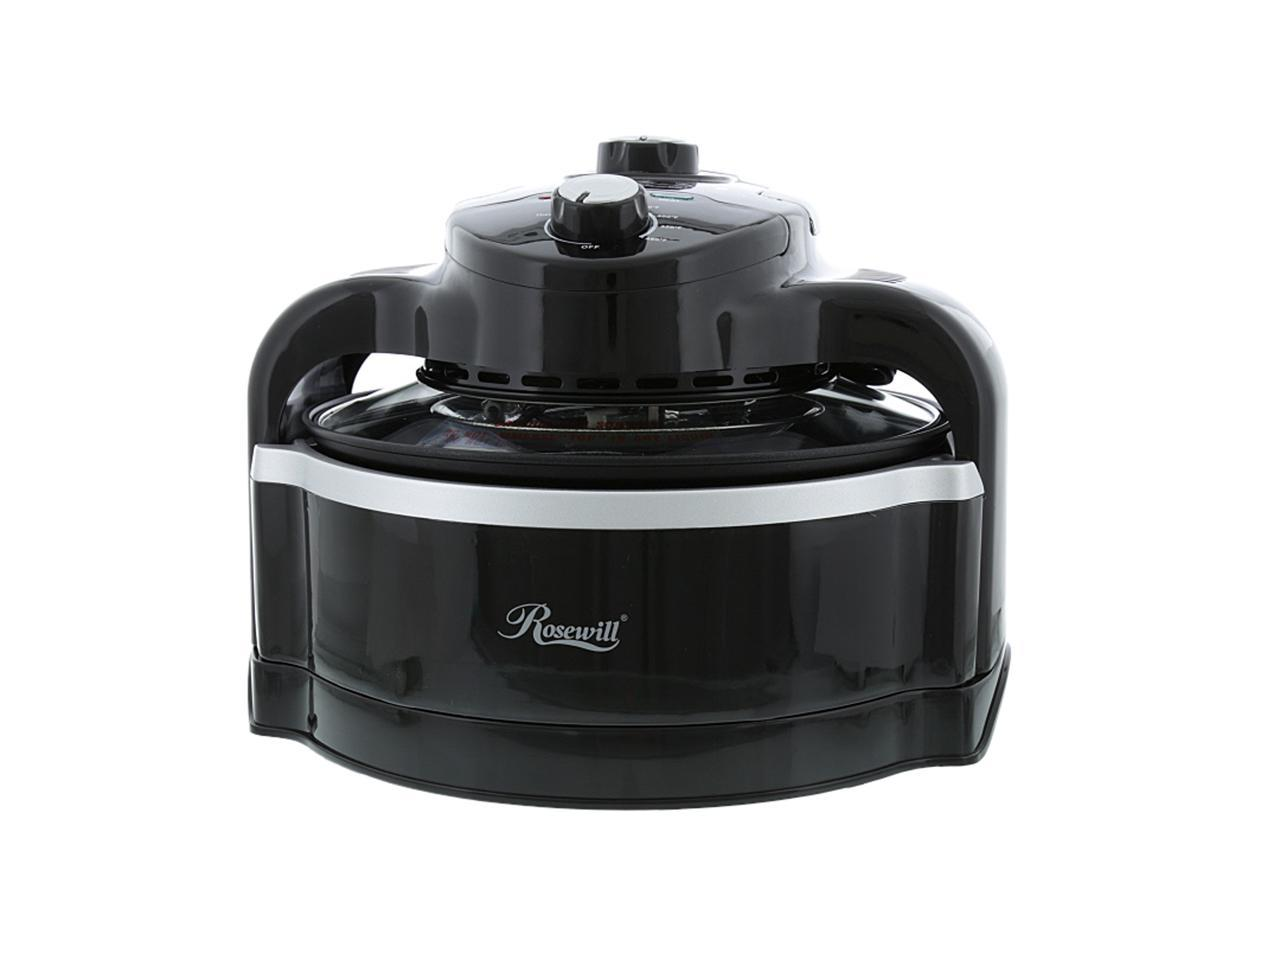 Rosewill Air Fryer 7.4-Quart Multicooker with Frying Basket and Accessories